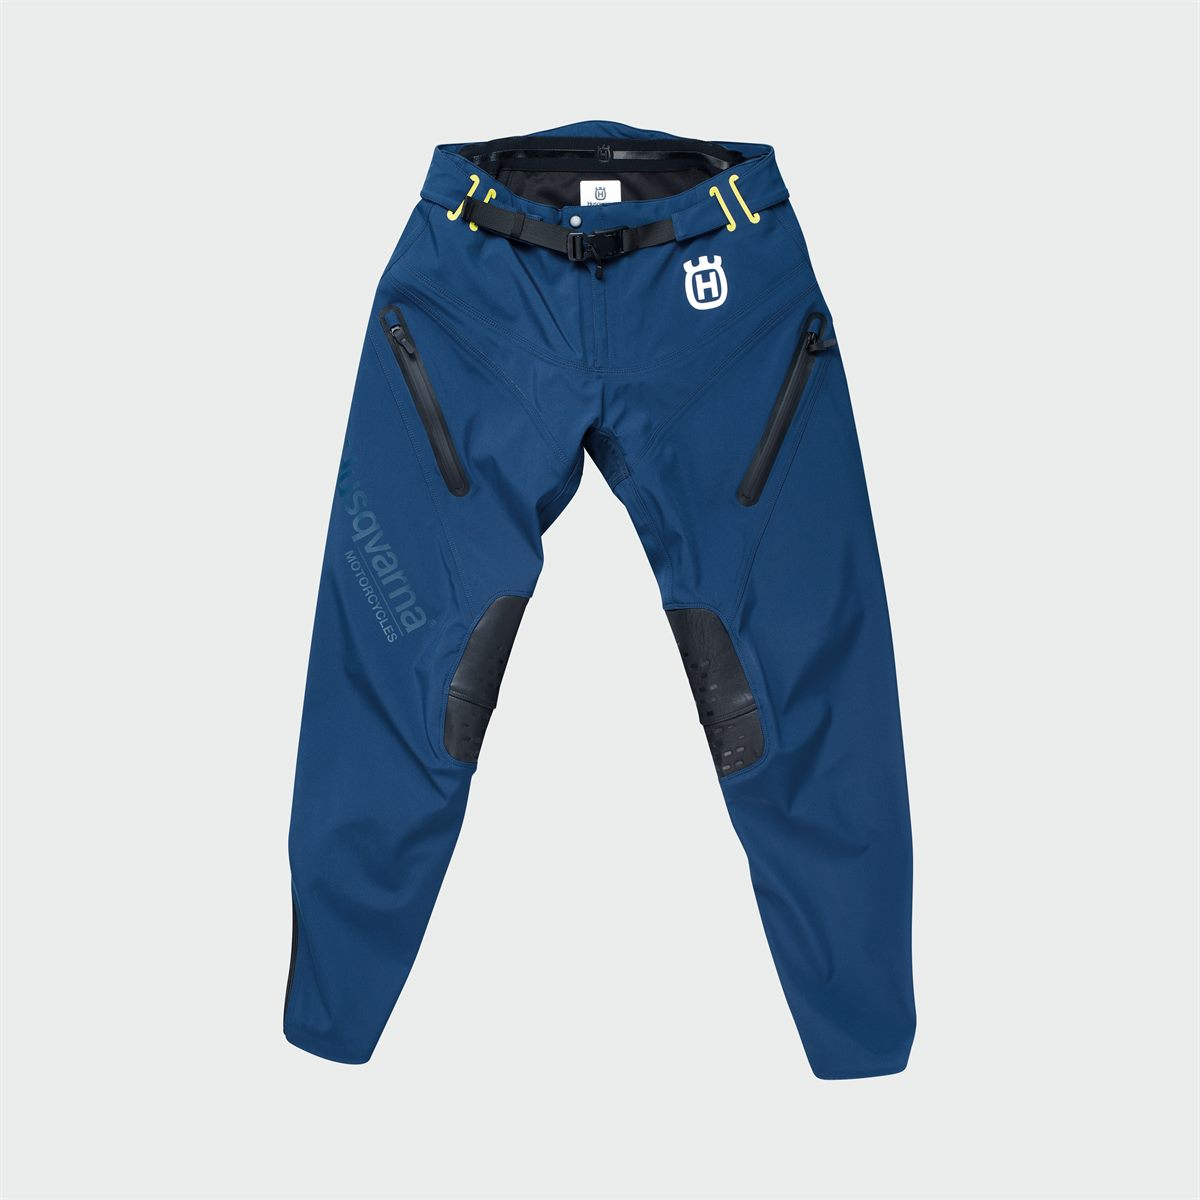 Husqvarna Motorcycles 2020 Functional Clothing Offroad Collection - GOTLAND WP PANTS